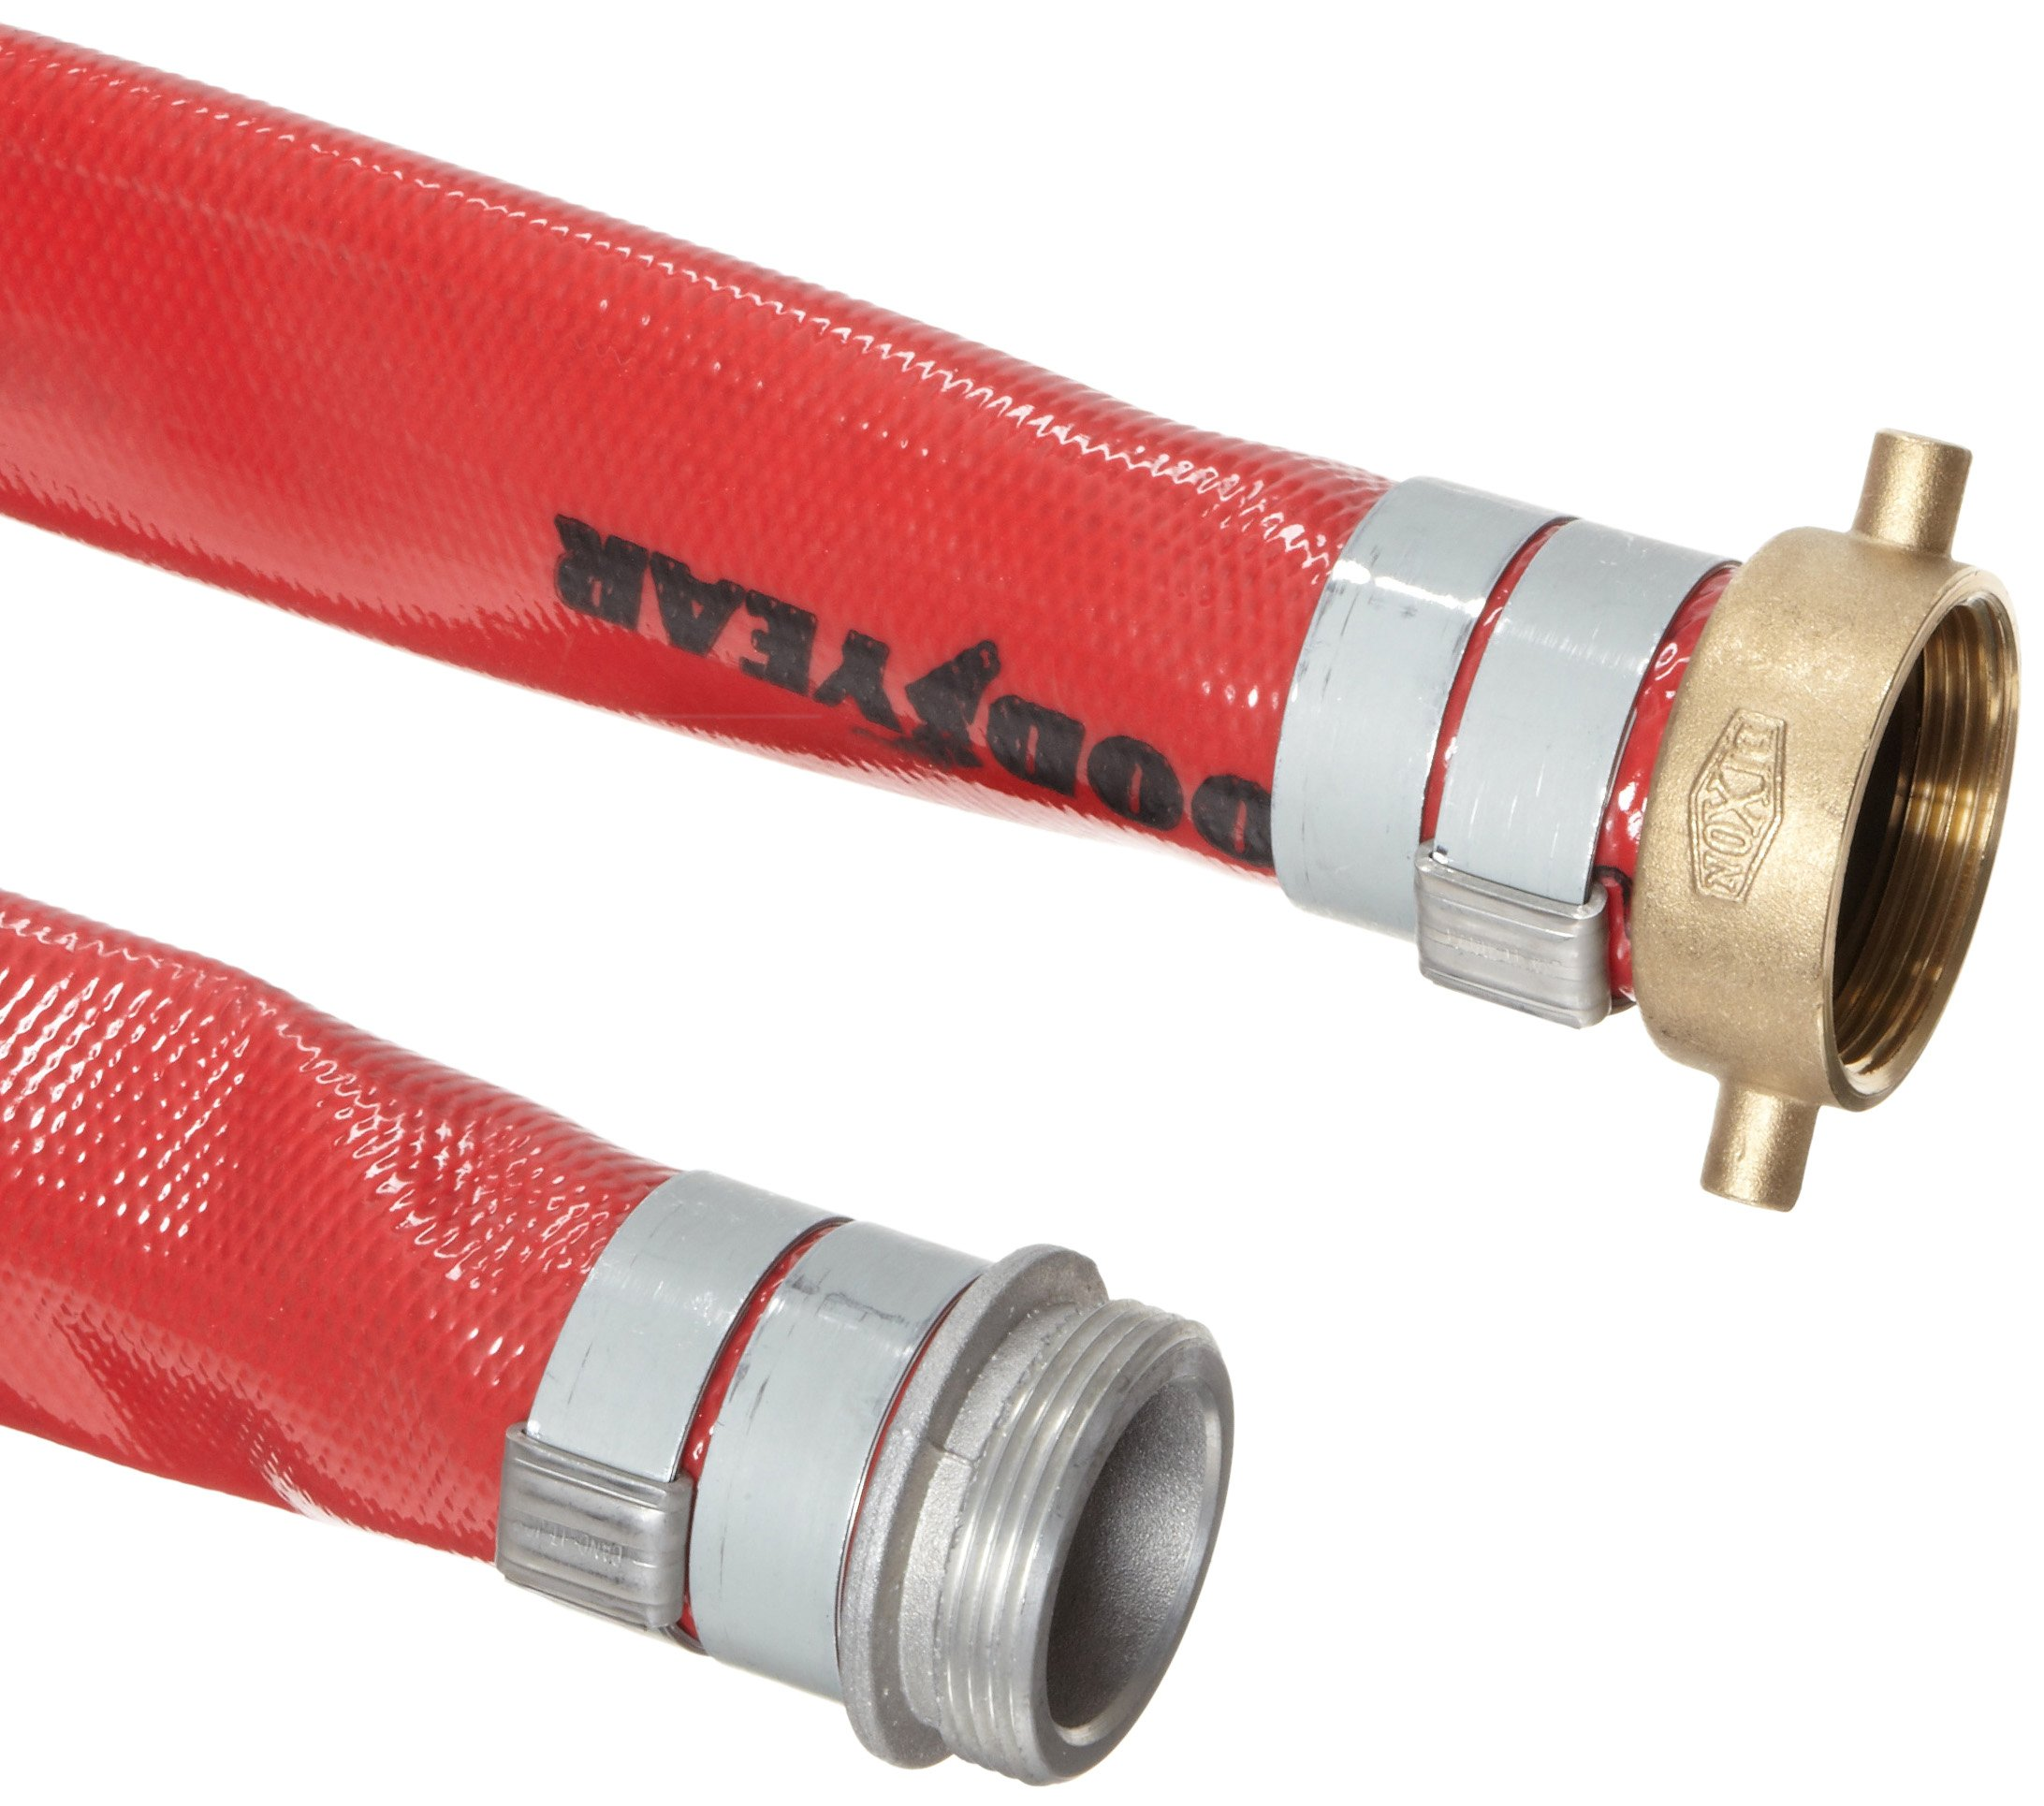 Goodyear EP Spiraflex Red PVC Suction/Discharge Hose Assembly, 2'' Aluminum NPSH Male x Brass Female Swivel Connection, 150 PSI Maximum Pressure, 25' Length, 2'' ID by Goodyear Engineered Products